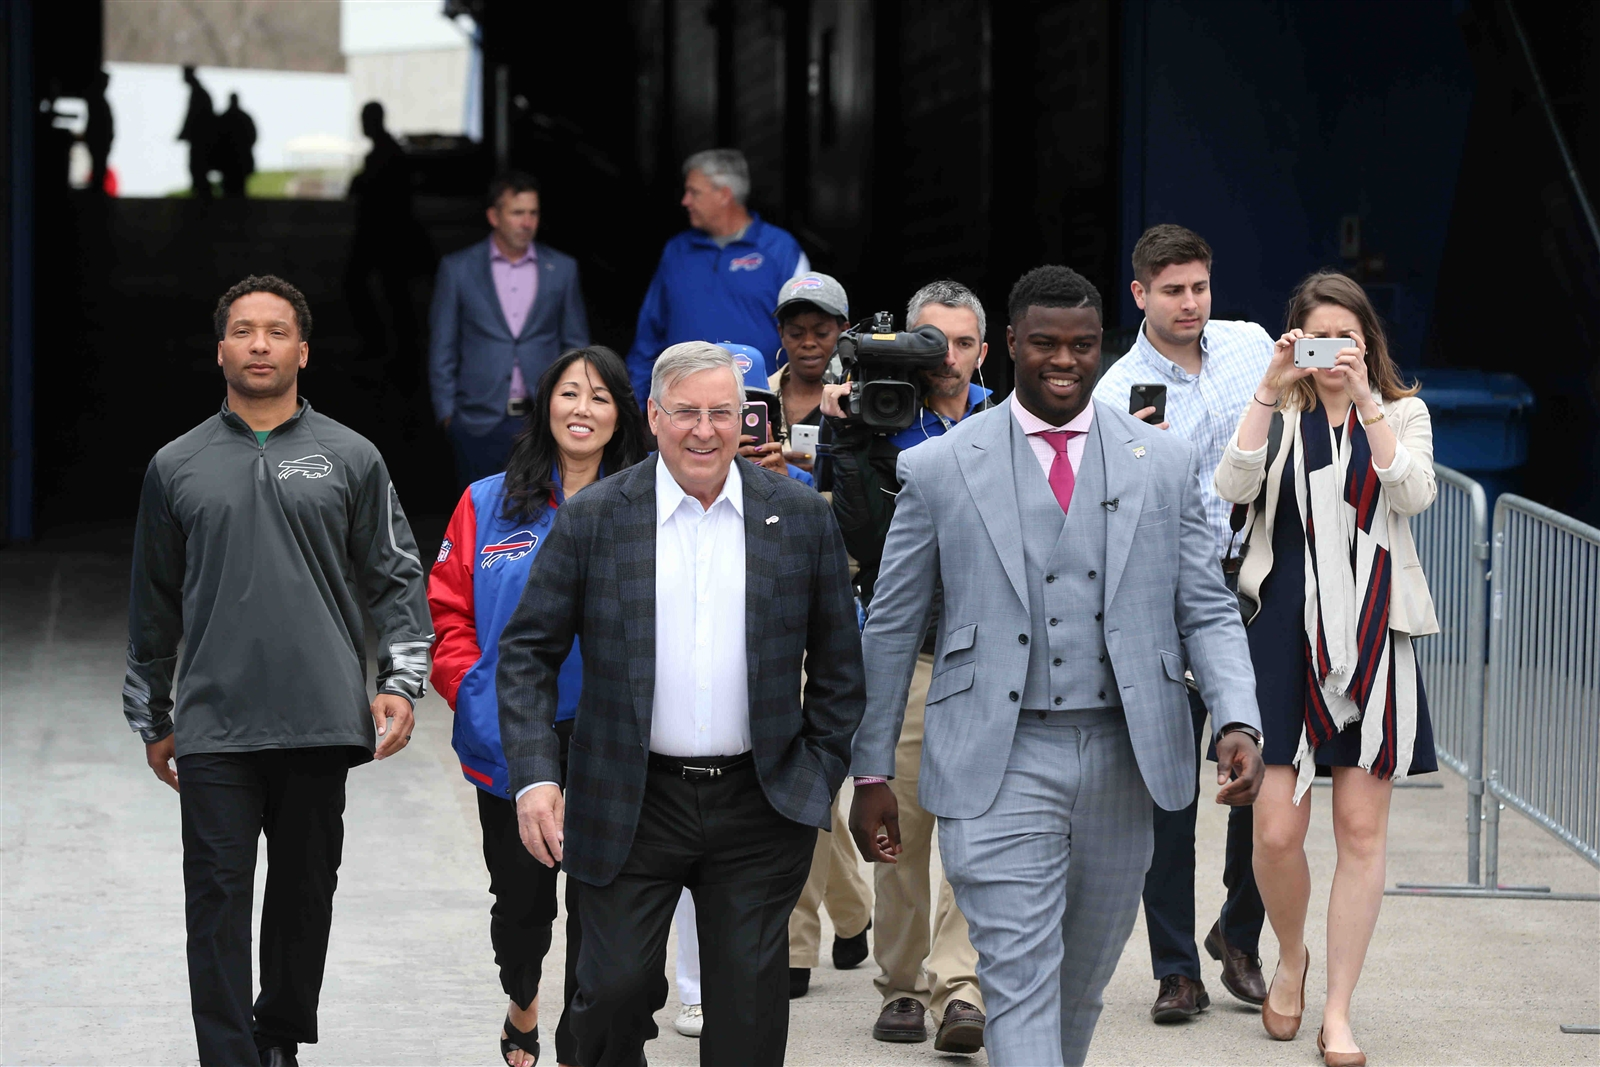 Shaq Lawson leads the way along with Bills owner Terry Pegula, followed by GM Doug Whaley, owner Kim Pegula, and, further back, team president Russ Brandon and coach Rex Ryan. (James P. McCoy/Buffalo News)